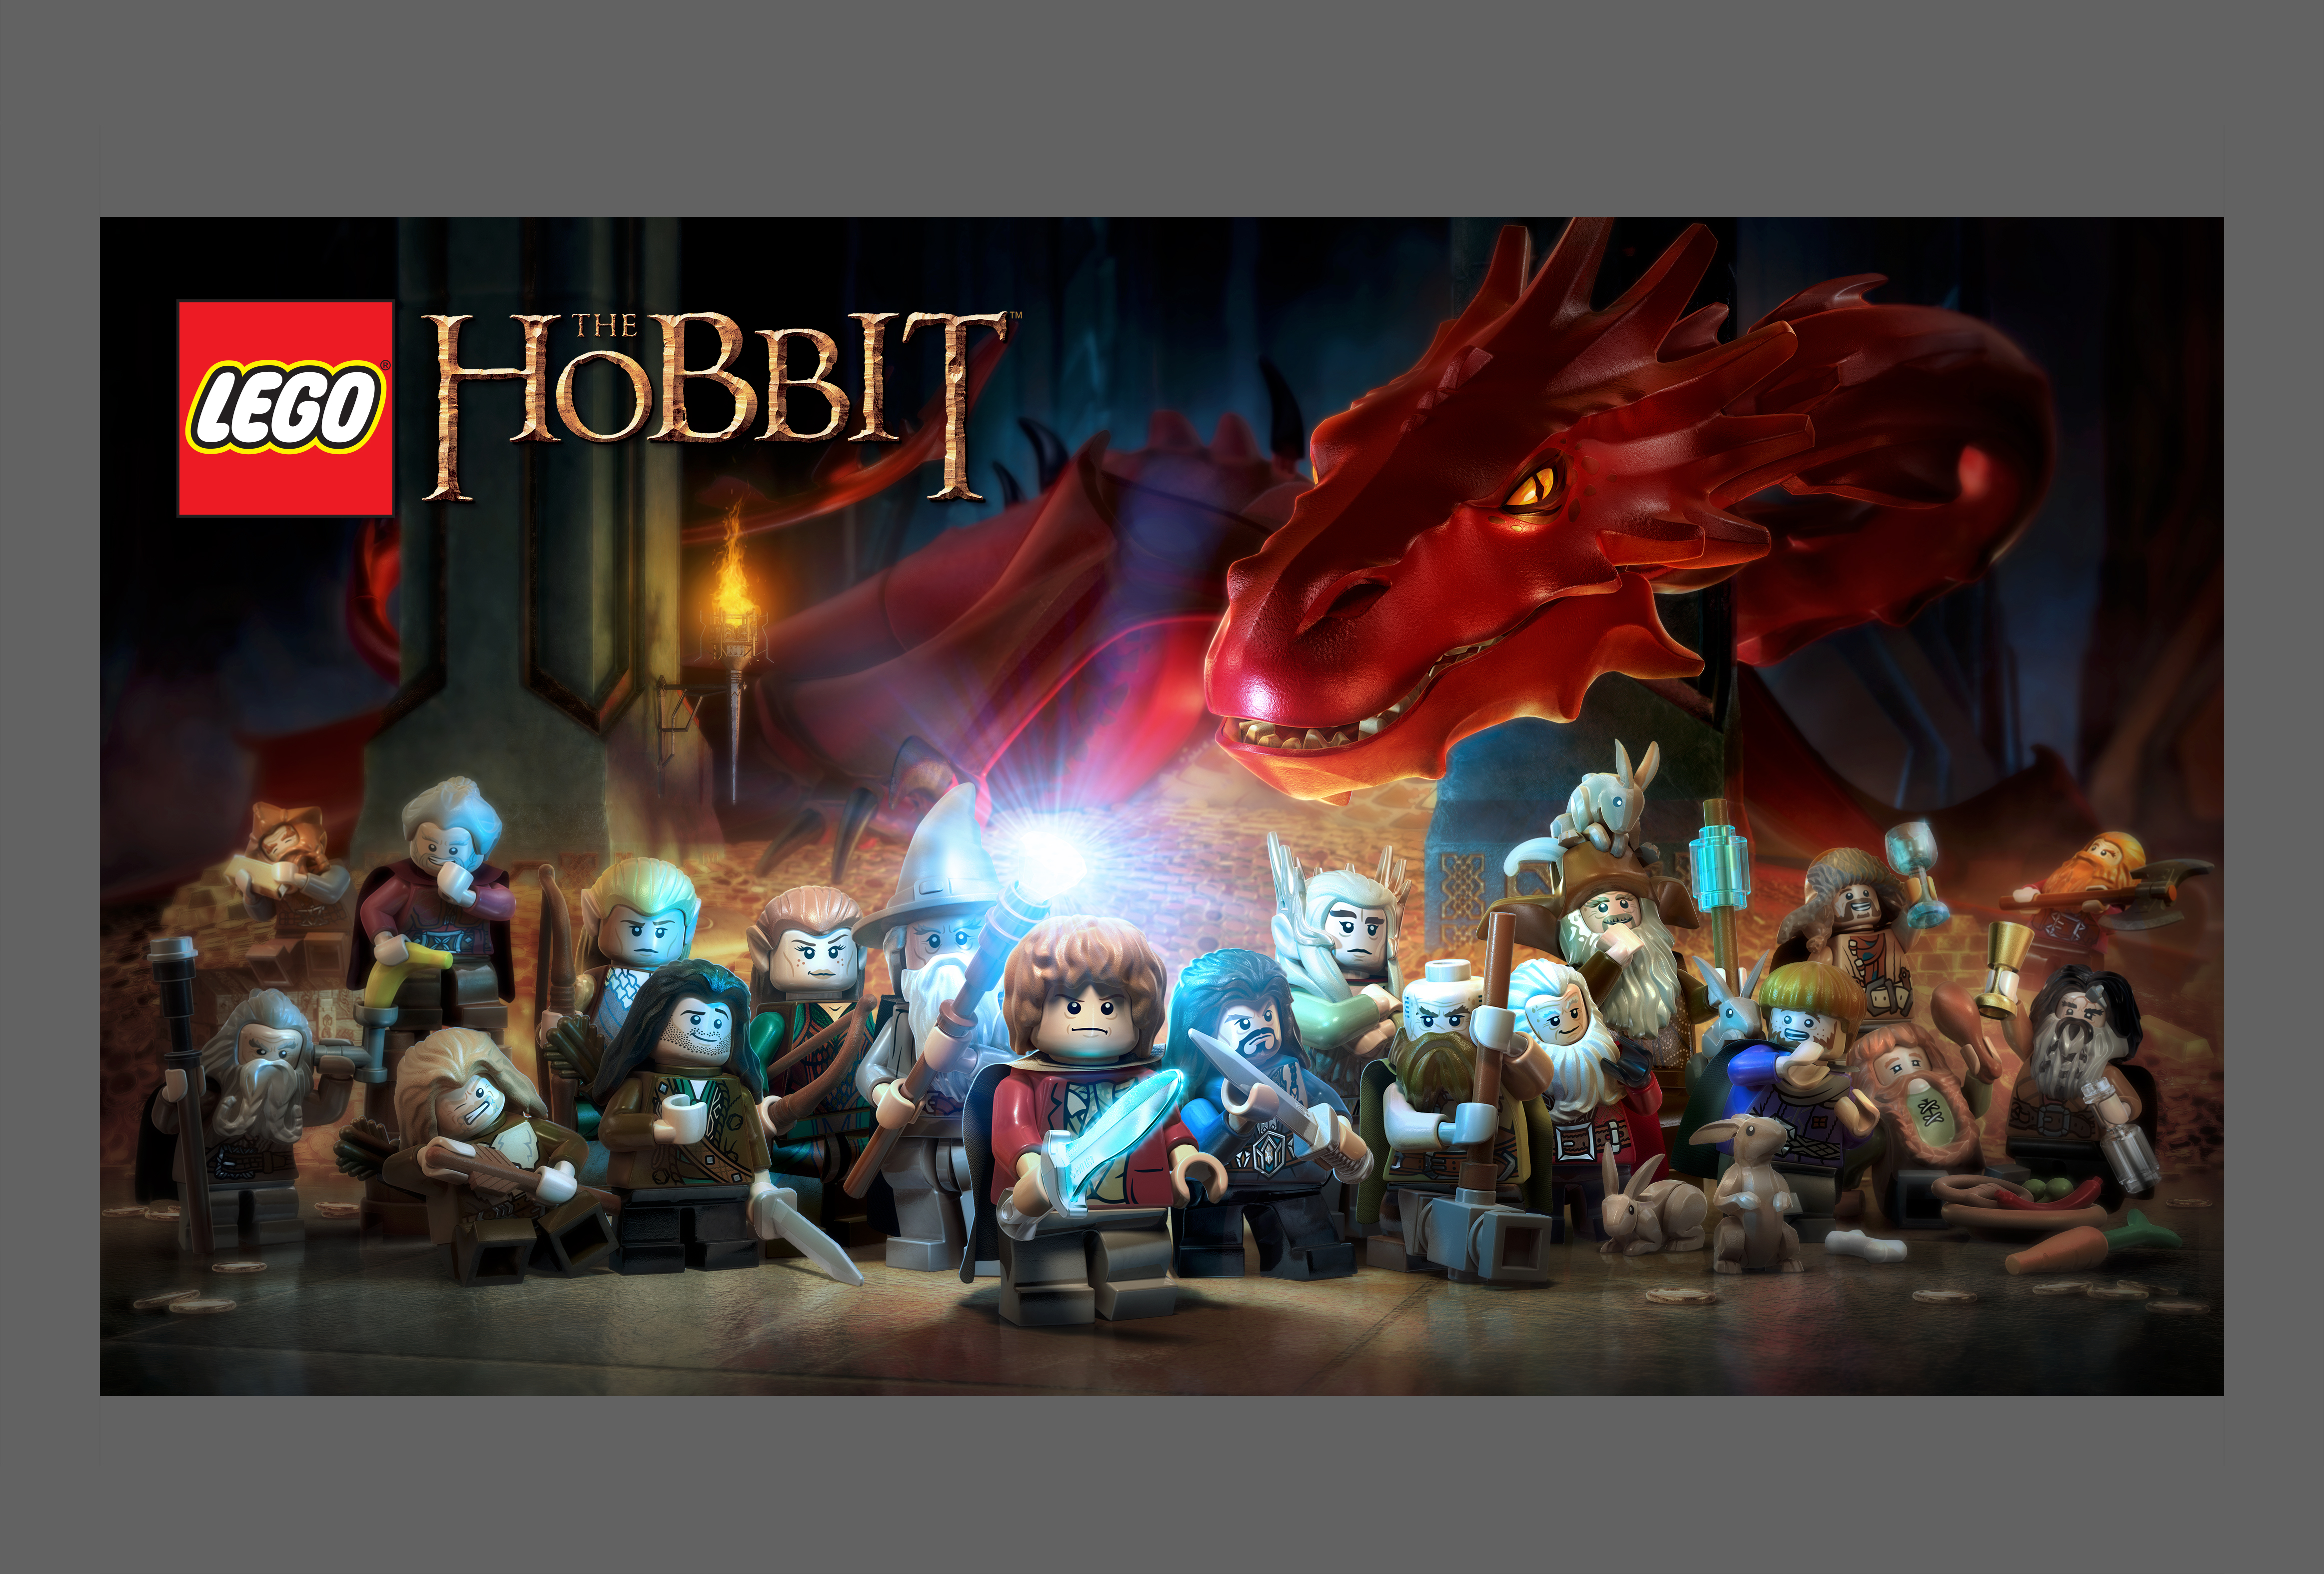 New Lego Games For Ps3 : Playstation news u lego the hobbit under lock and key at game